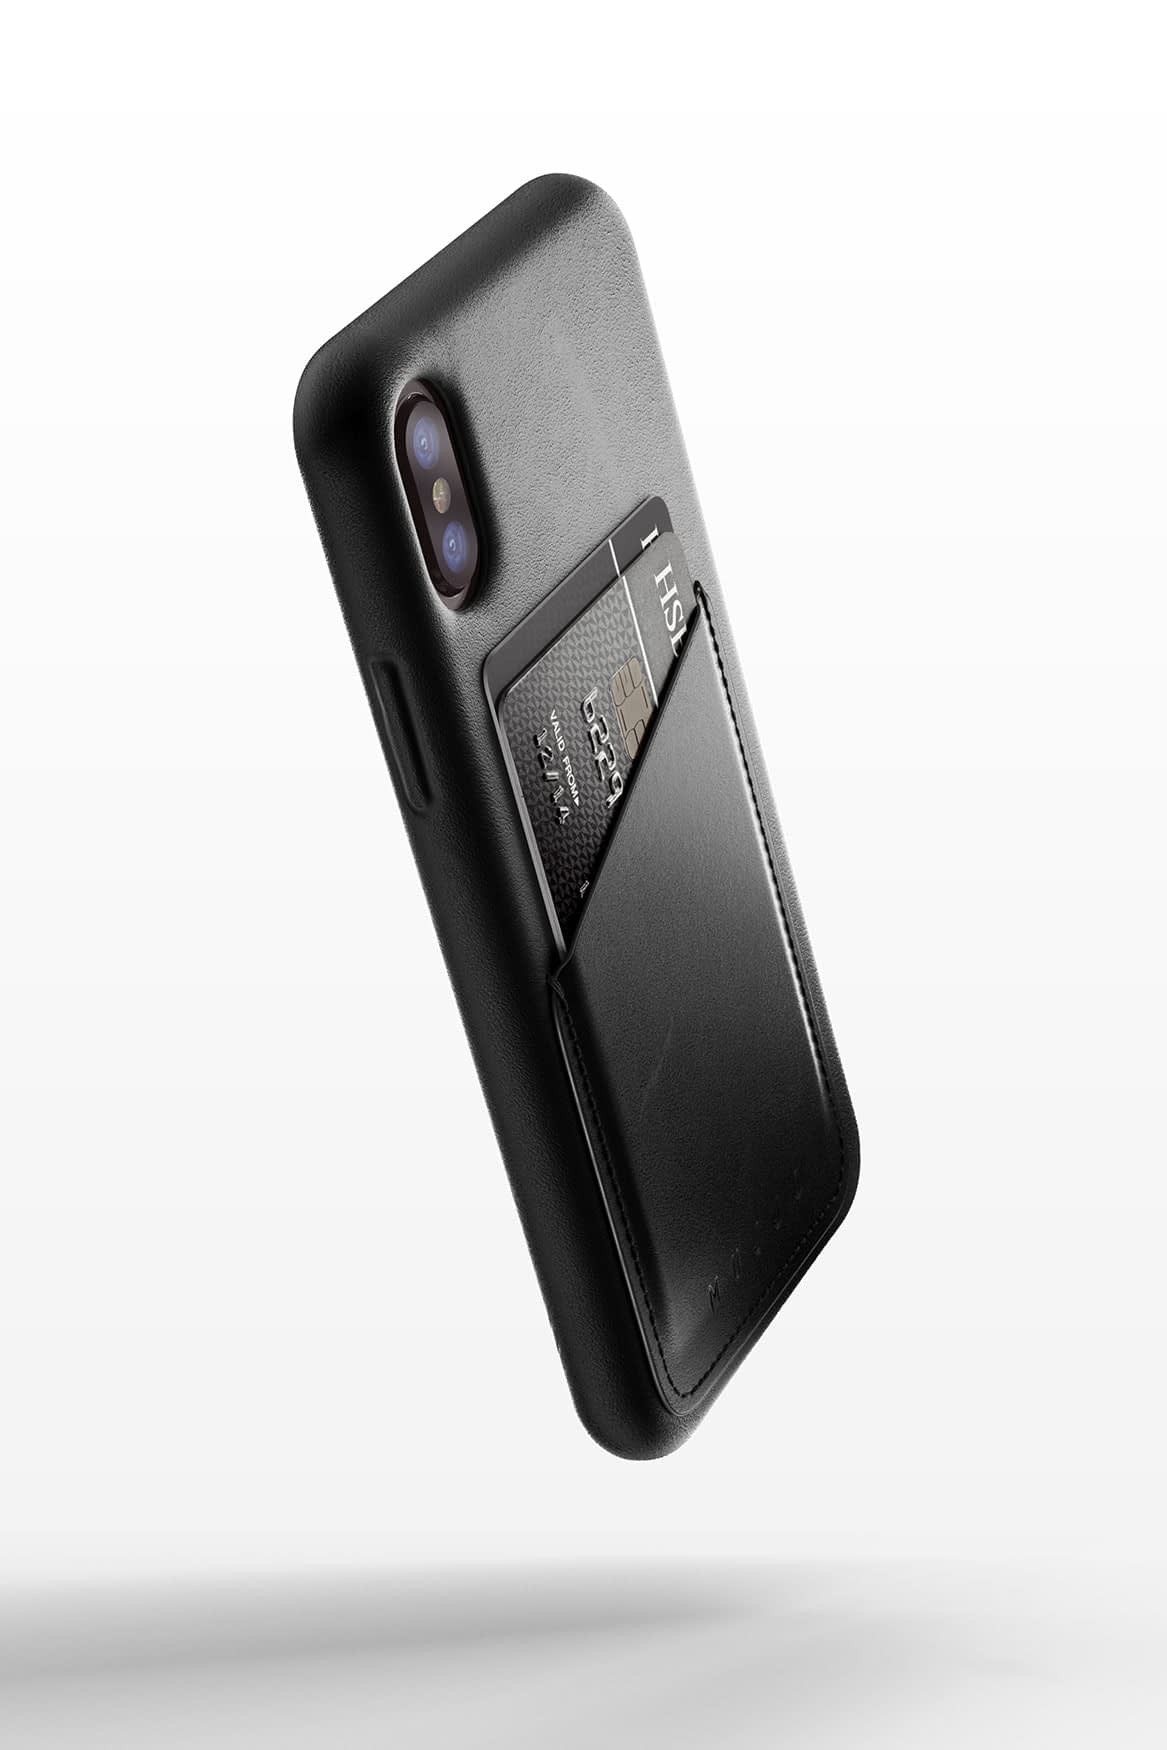 Full leather wallet case for iPhone X Black 01